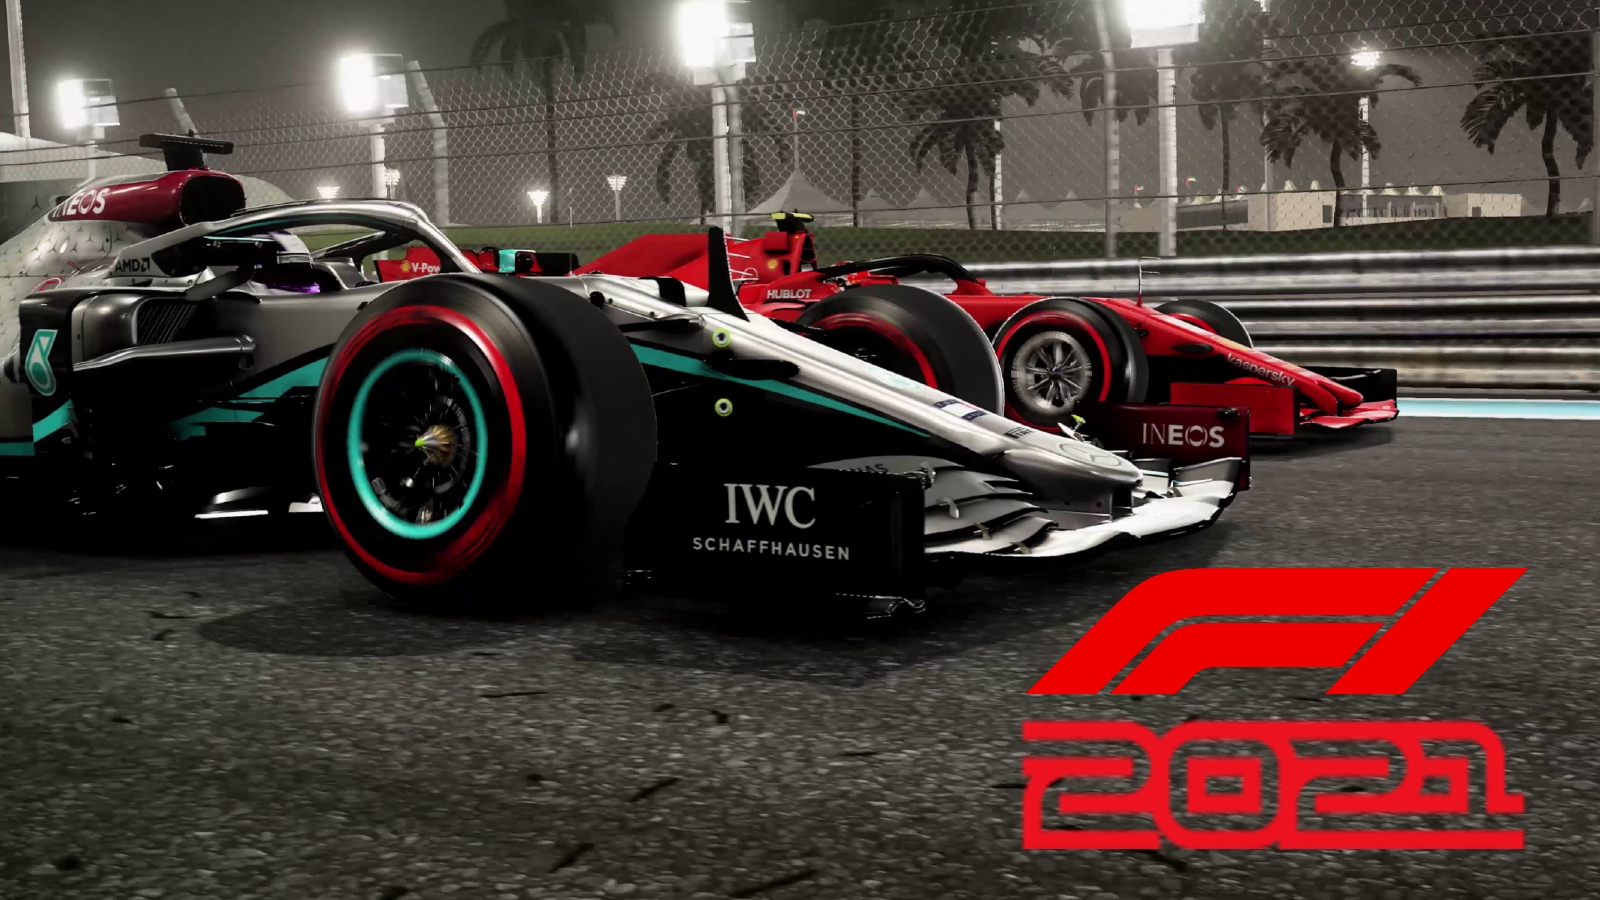 F1 2021 release date, trailers, my team and more